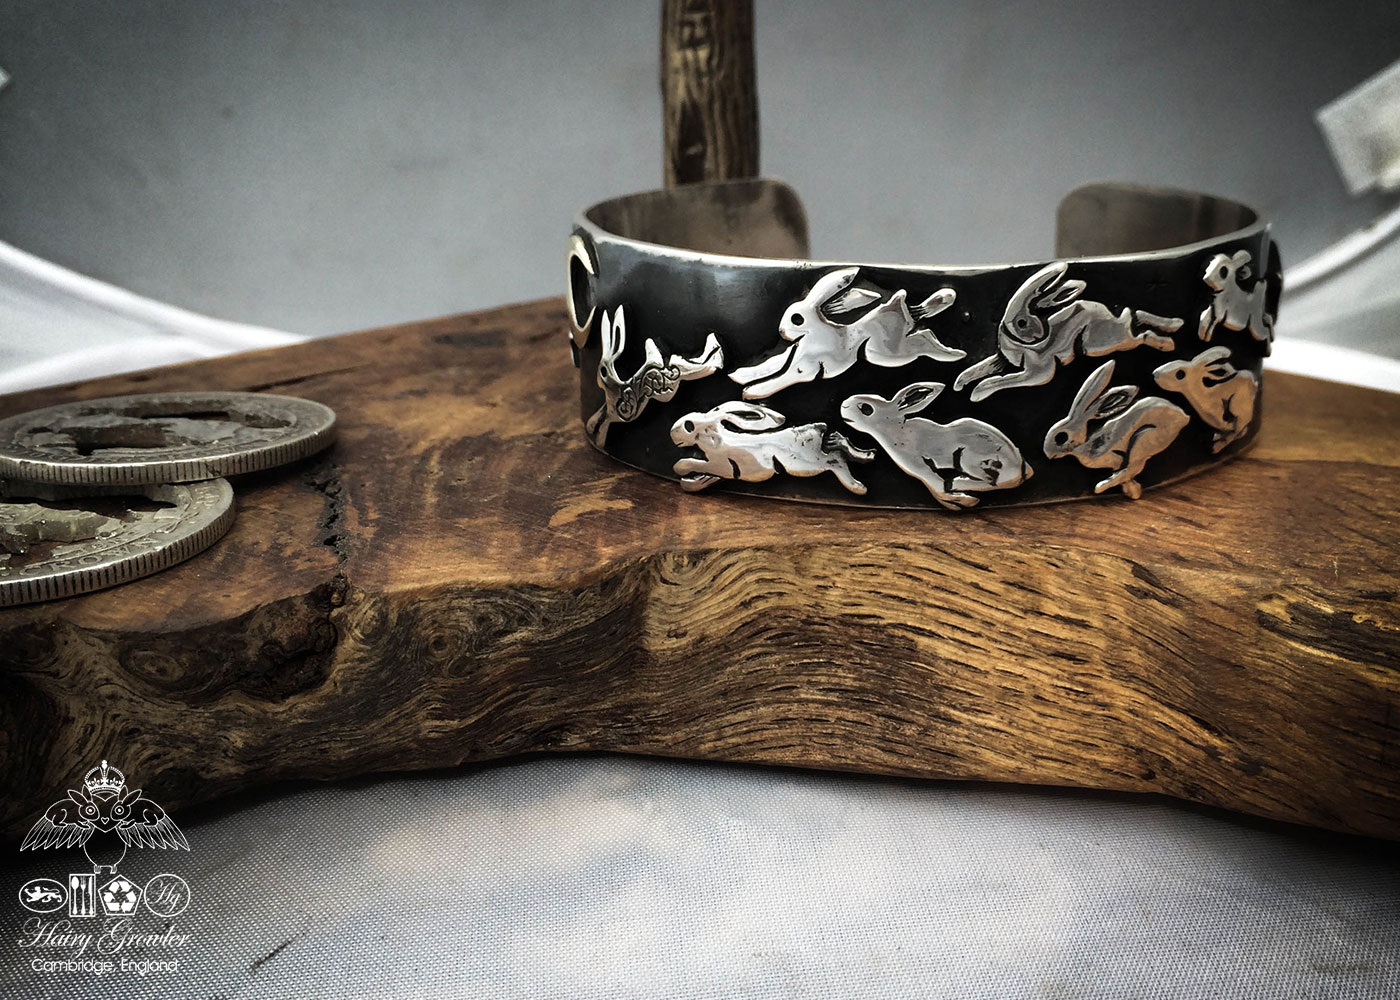 Handcrafted and recycled silver kuff bracelet leaping and dashing hares